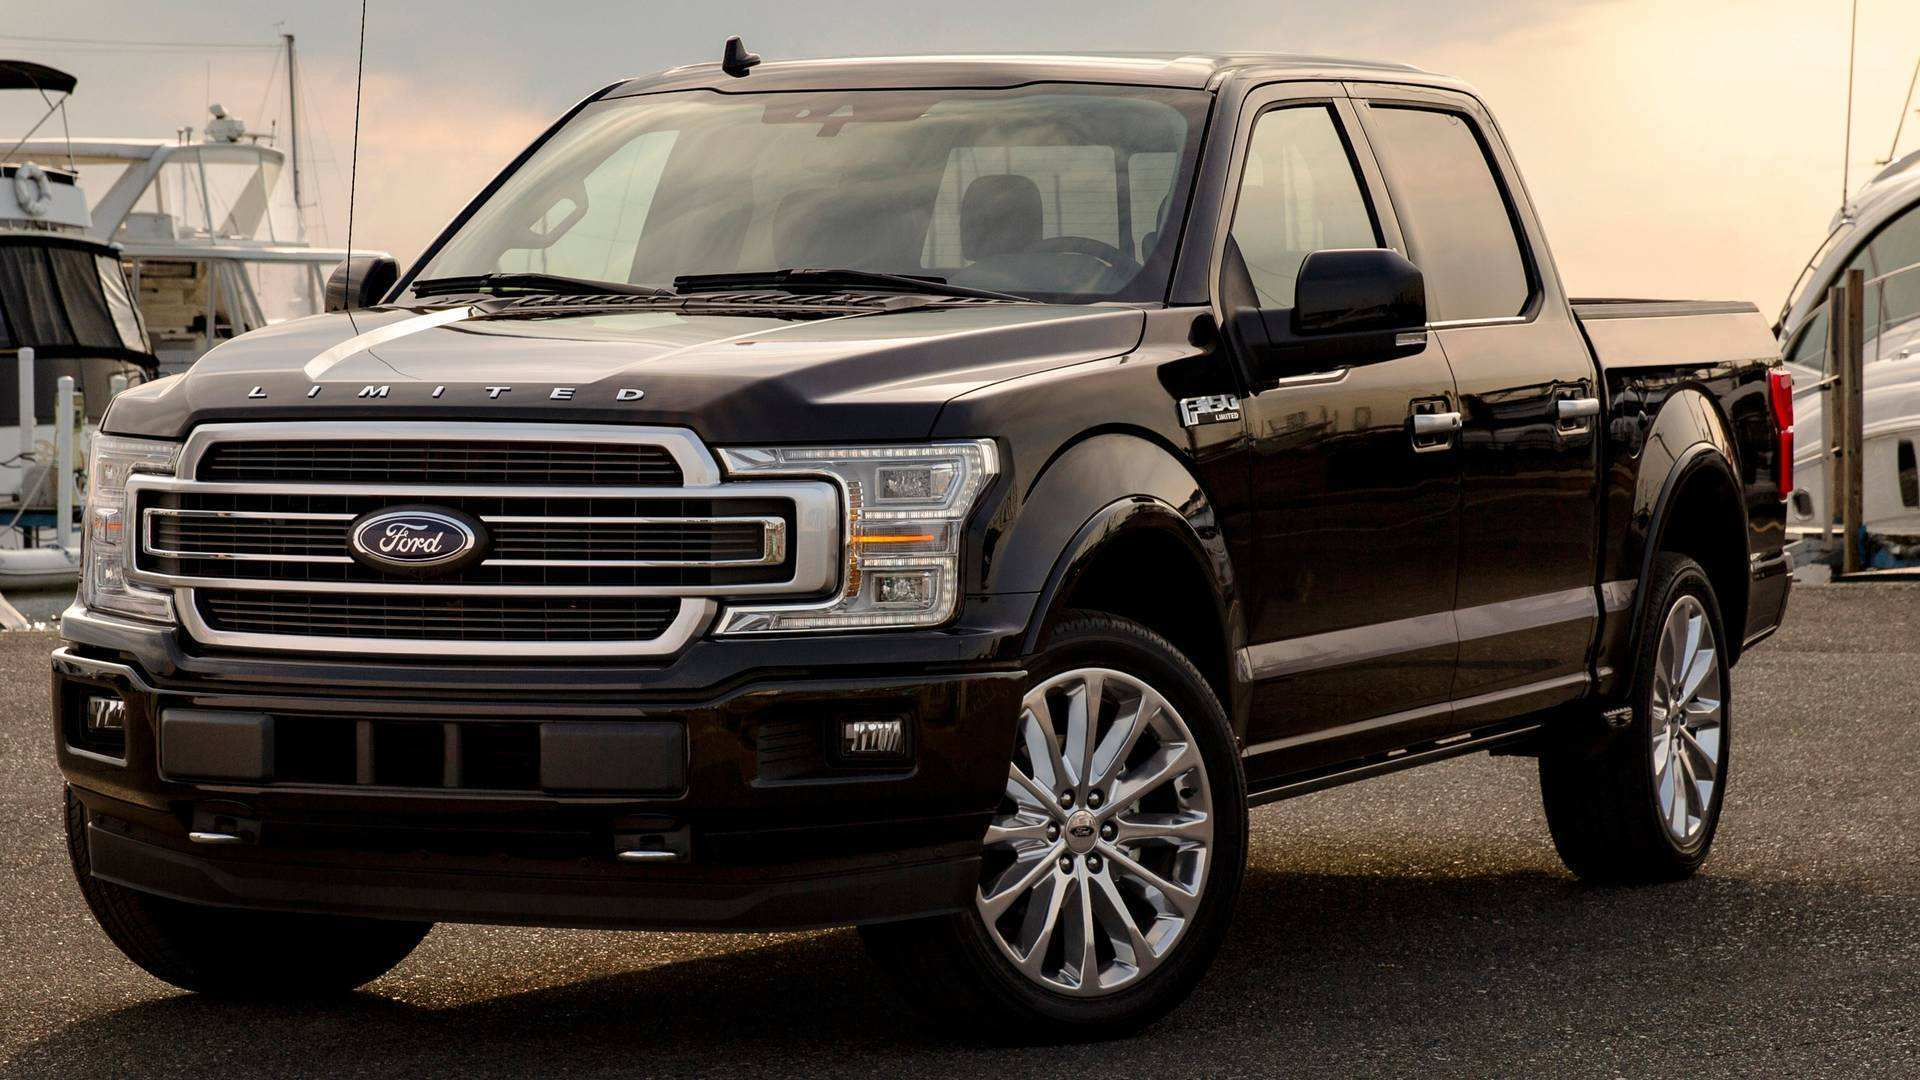 88 Best Review 2019 Ford Pickup Truck Rumors for 2019 Ford Pickup Truck